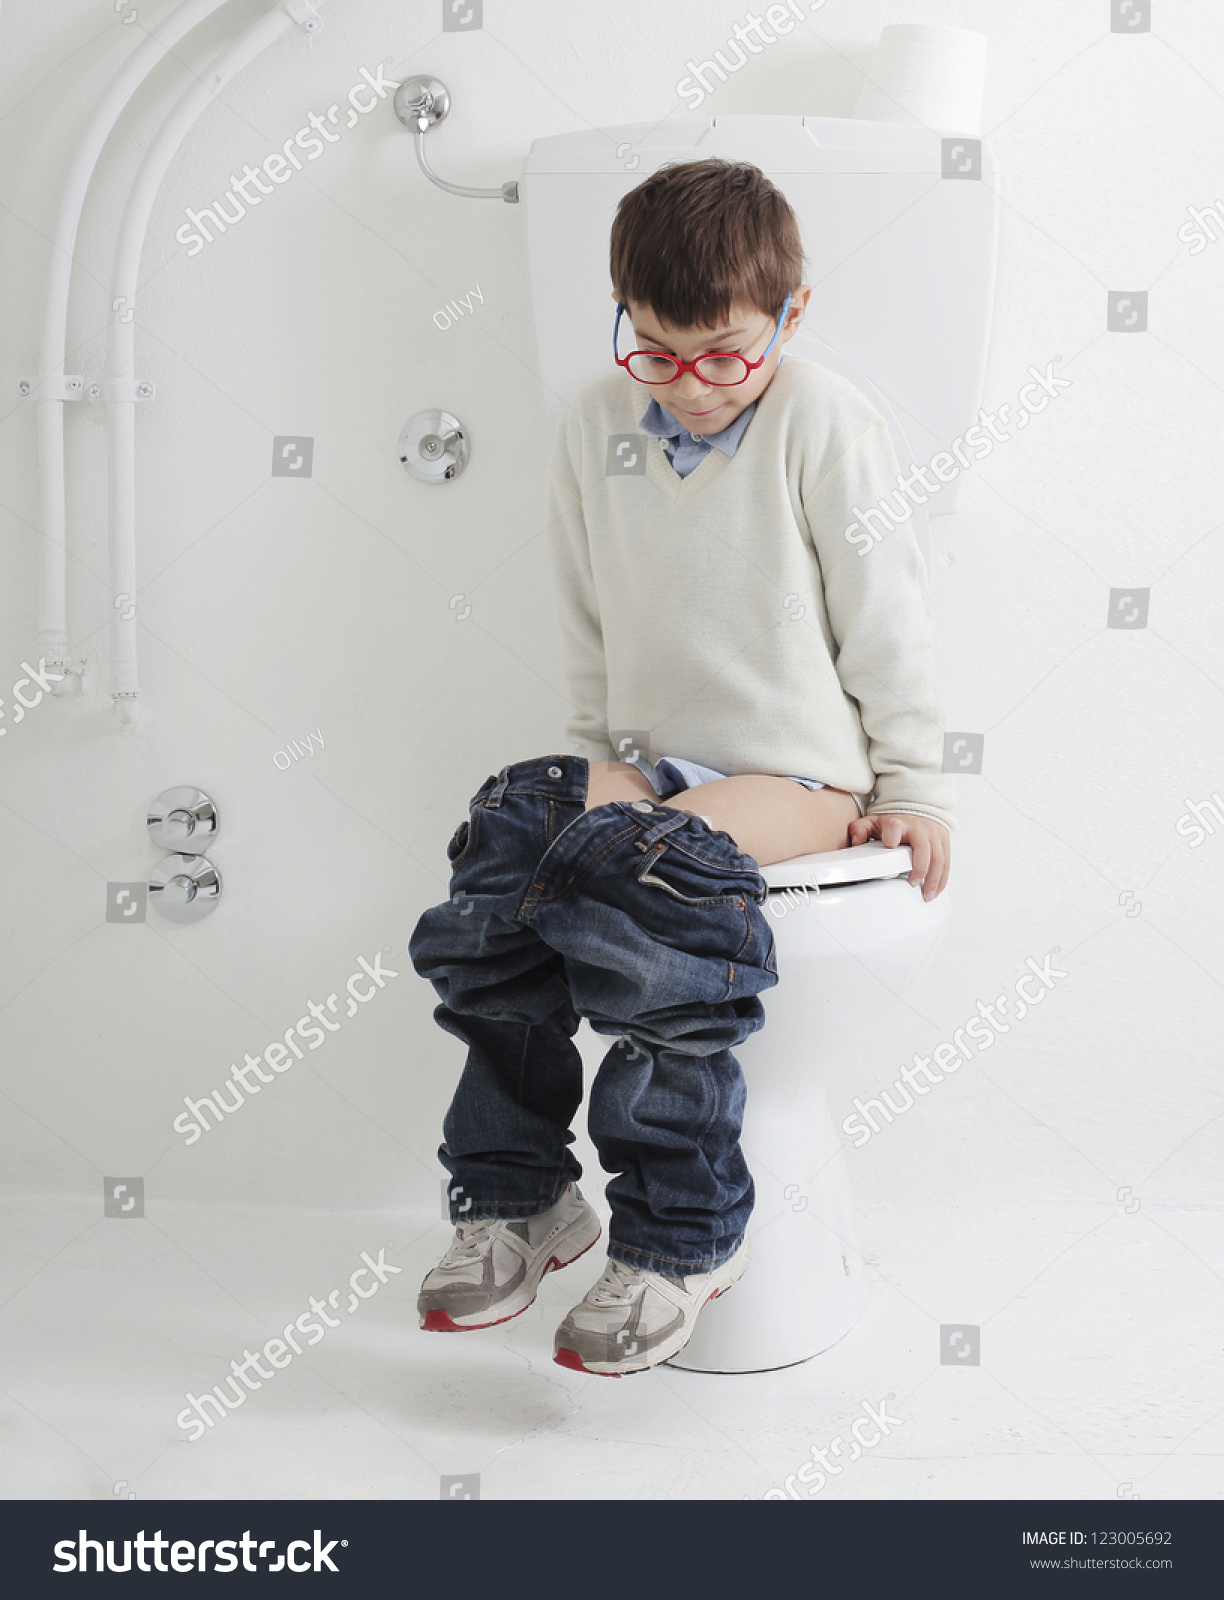 Little Boy Pooping Stock Video Footage - 4K and HD Video